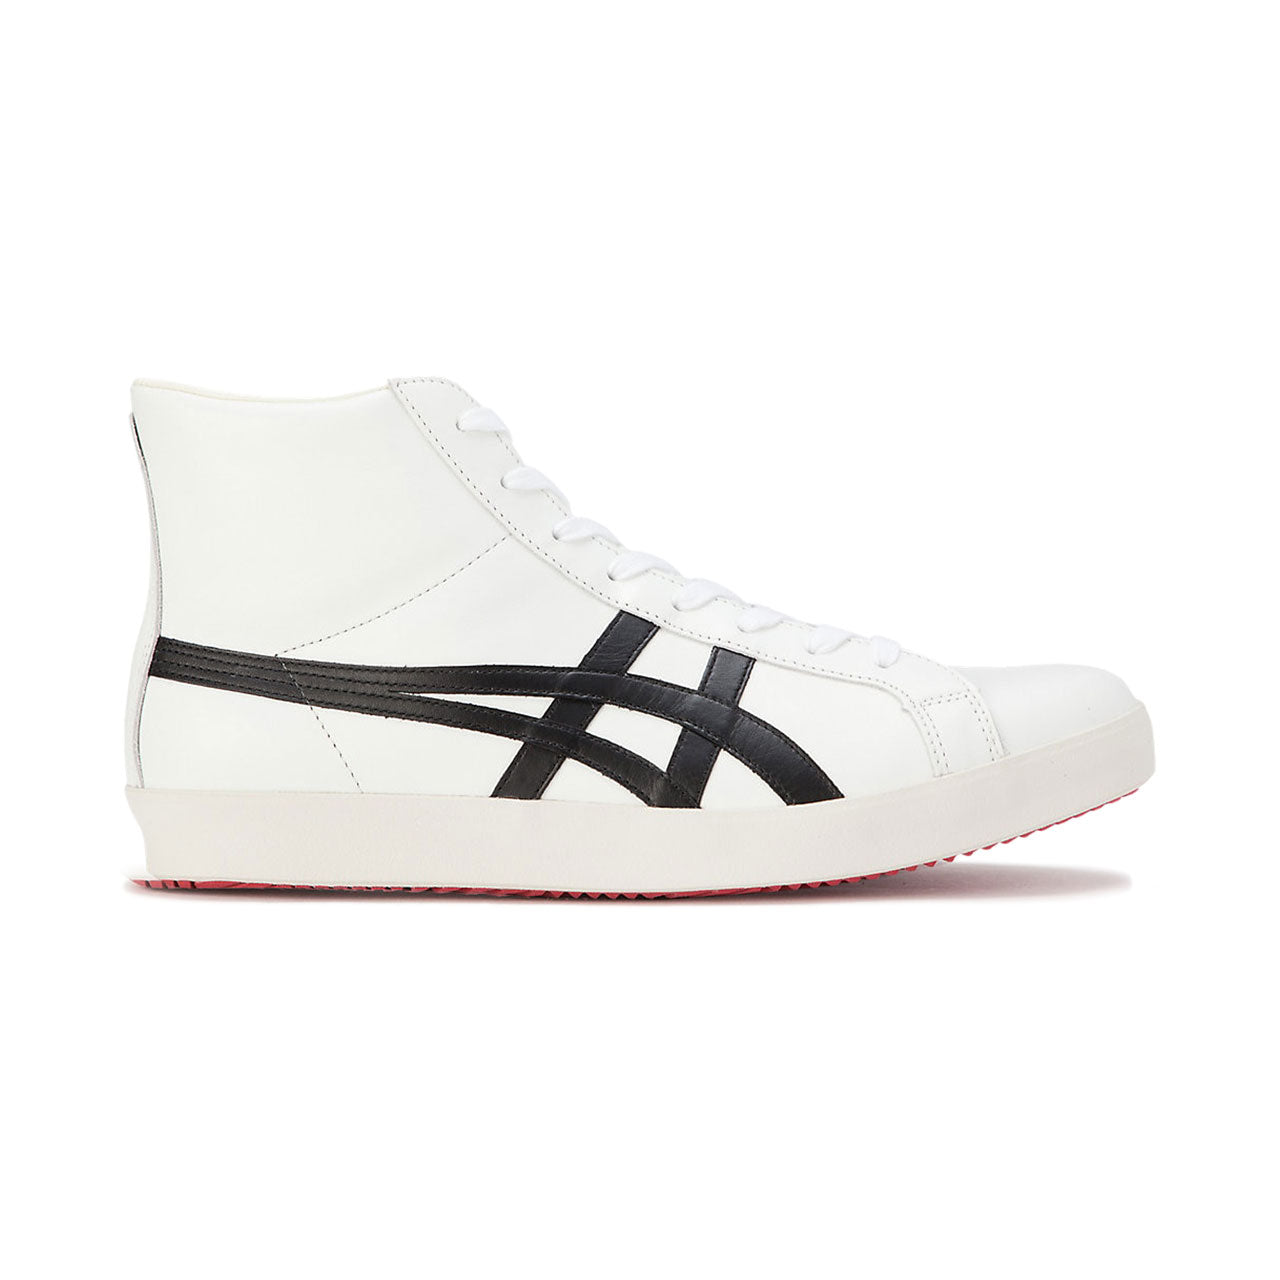 Onitsuka Tiger Nippon Made Fabre Sneakers